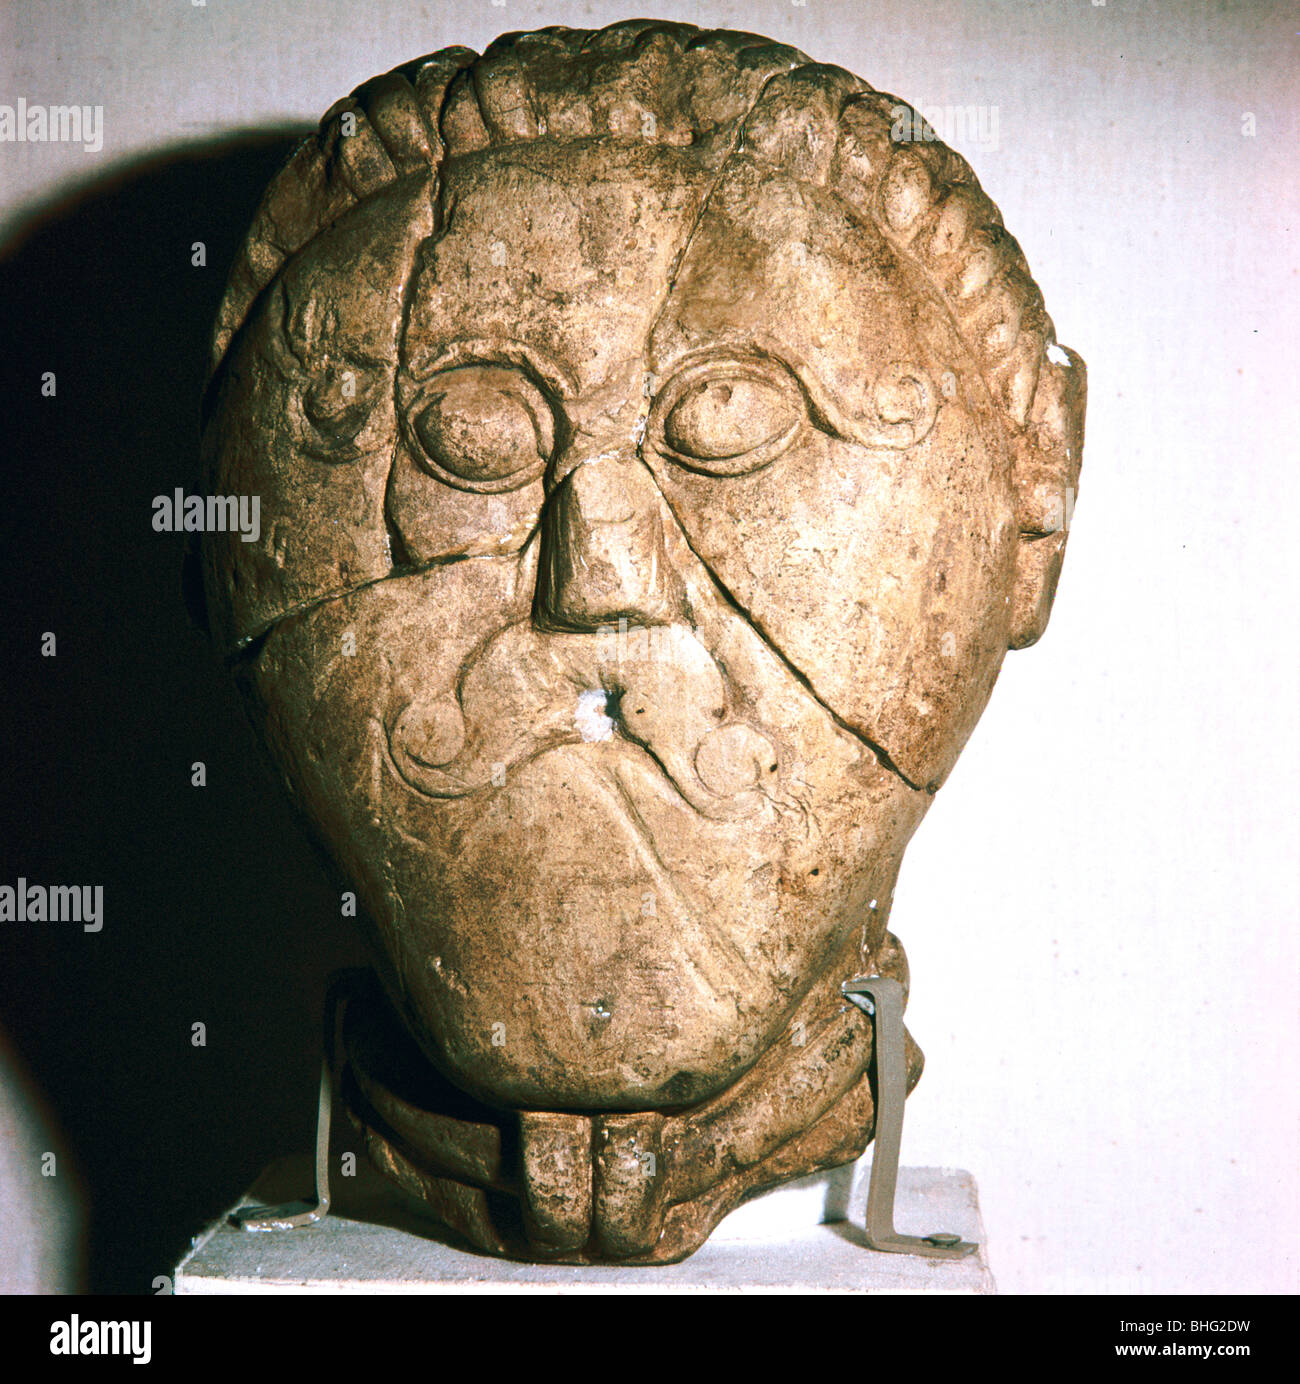 Celtic Head, Mseke Zehrovice, Czechoslovakia, c3rd - 2nd century BC. - Stock Image